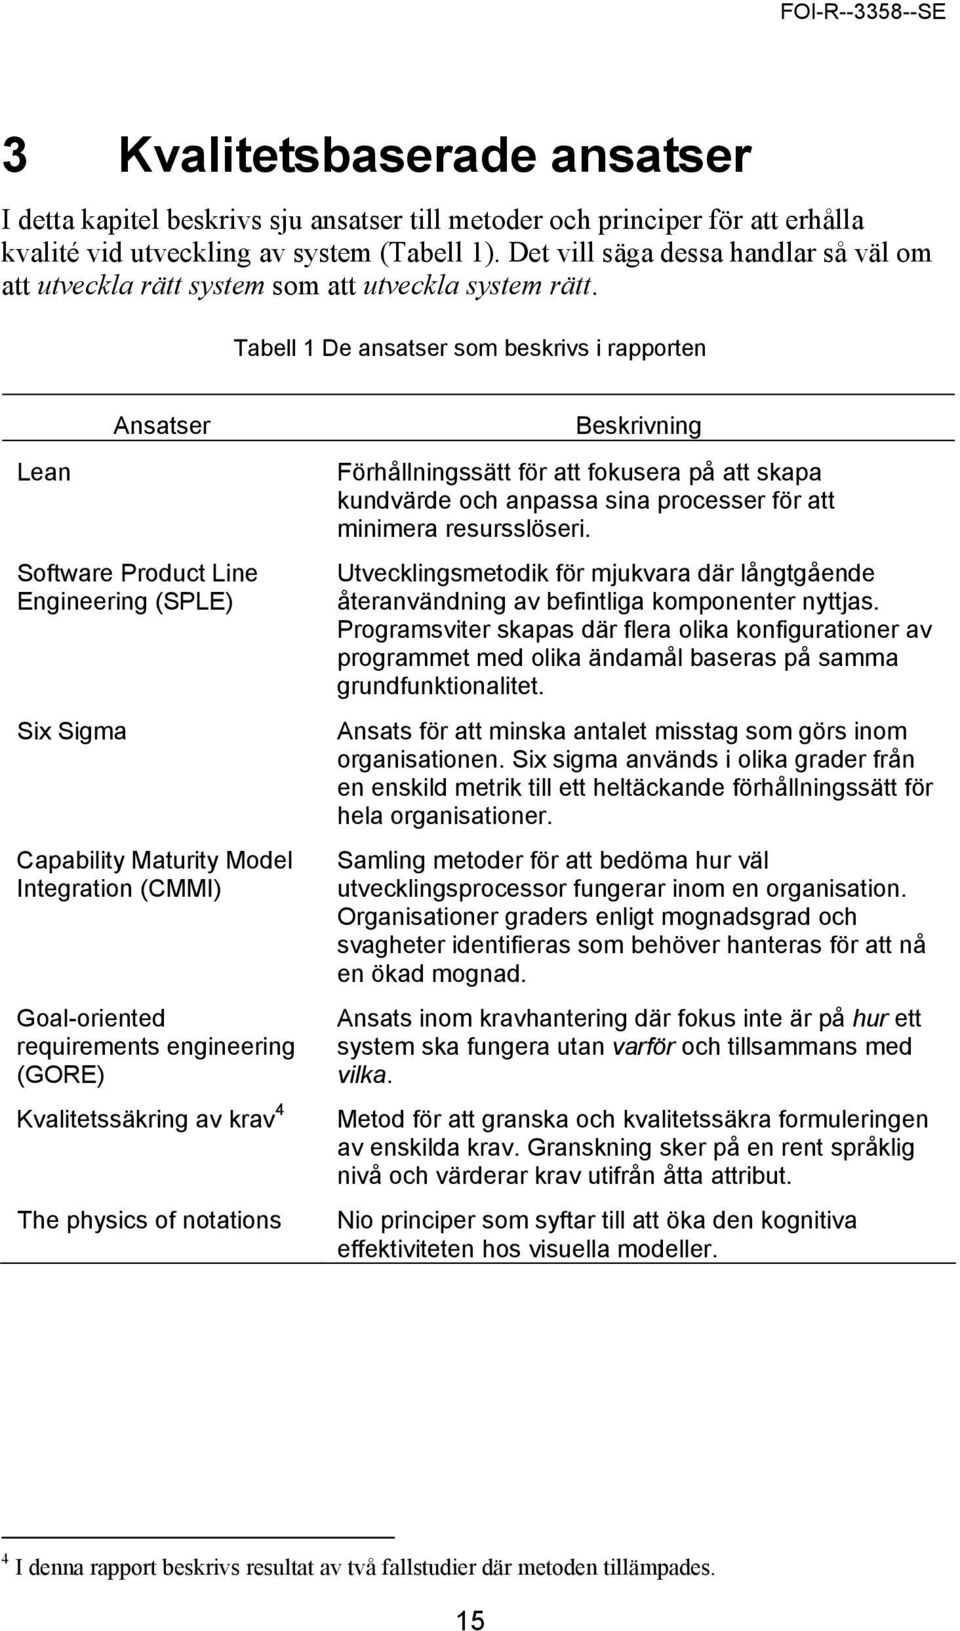 Tabell 1 De ansatser som beskrivs i rapporten Lean Ansatser Software Product Line Engineering (SPLE) Six Sigma Capability Maturity Model Integration (CMMI) Goal-oriented requirements engineering